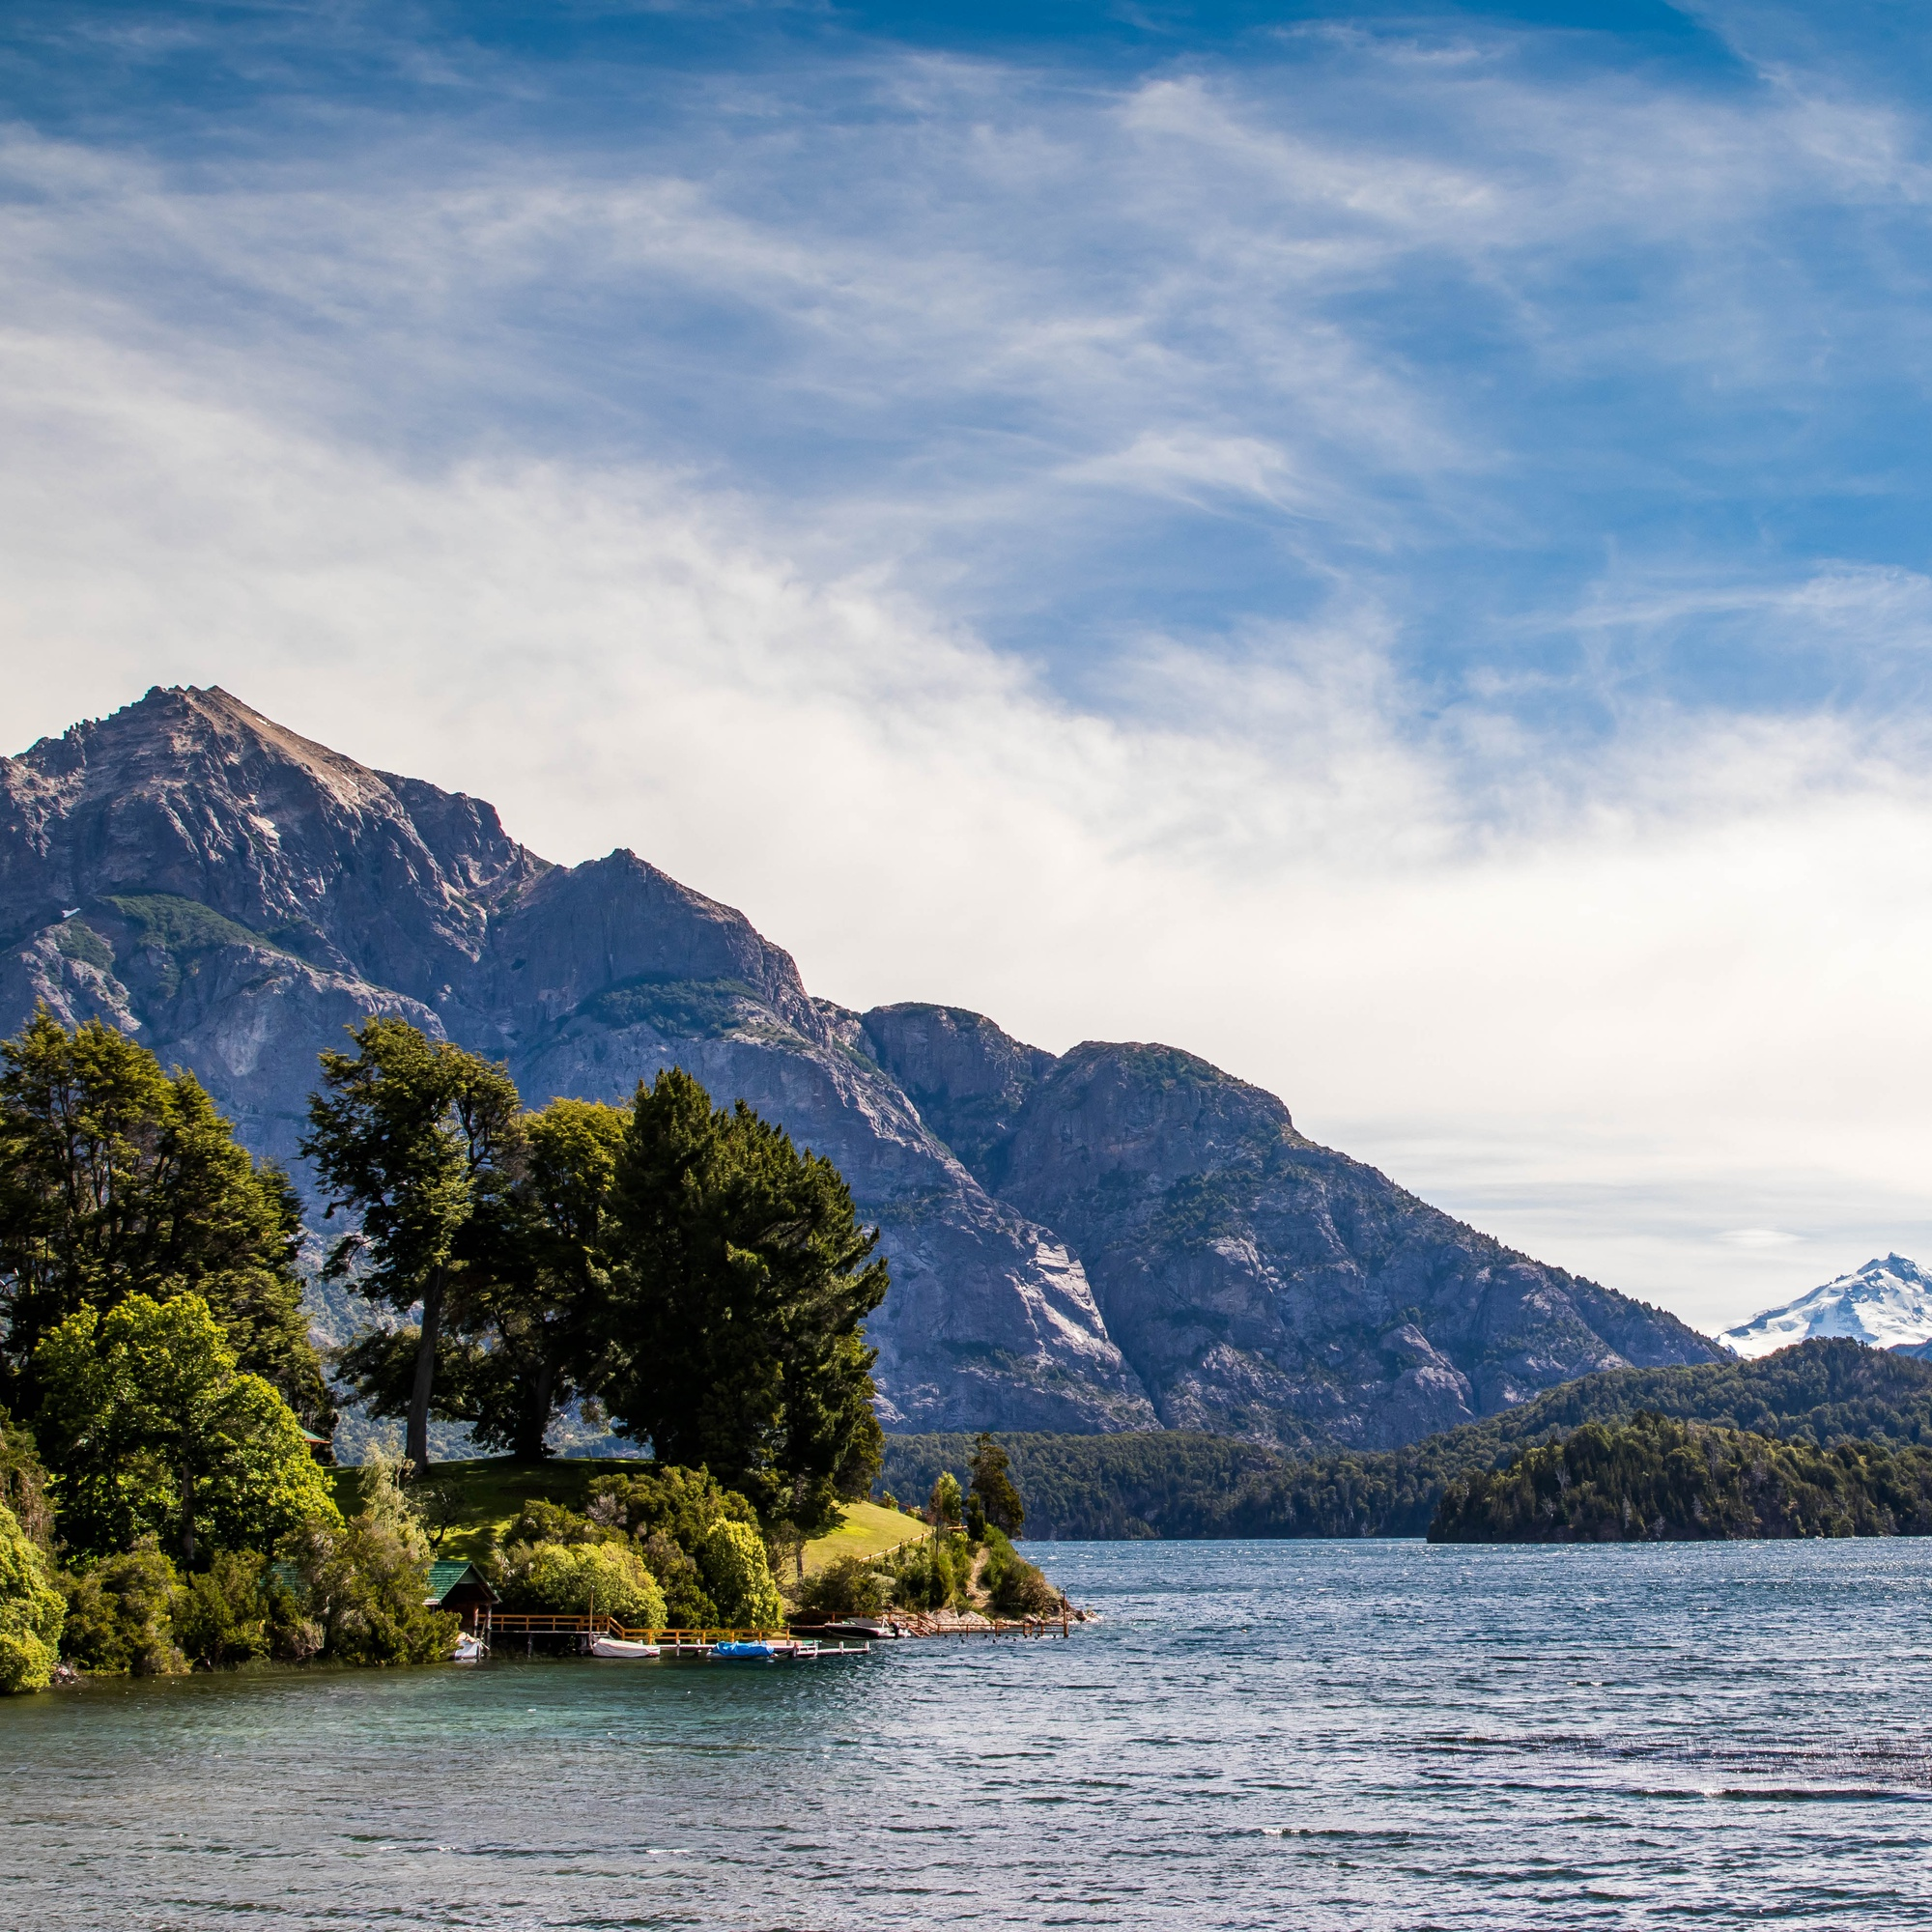 Patagonia is a collision of mountains and lush countryside, wound together with rivers.